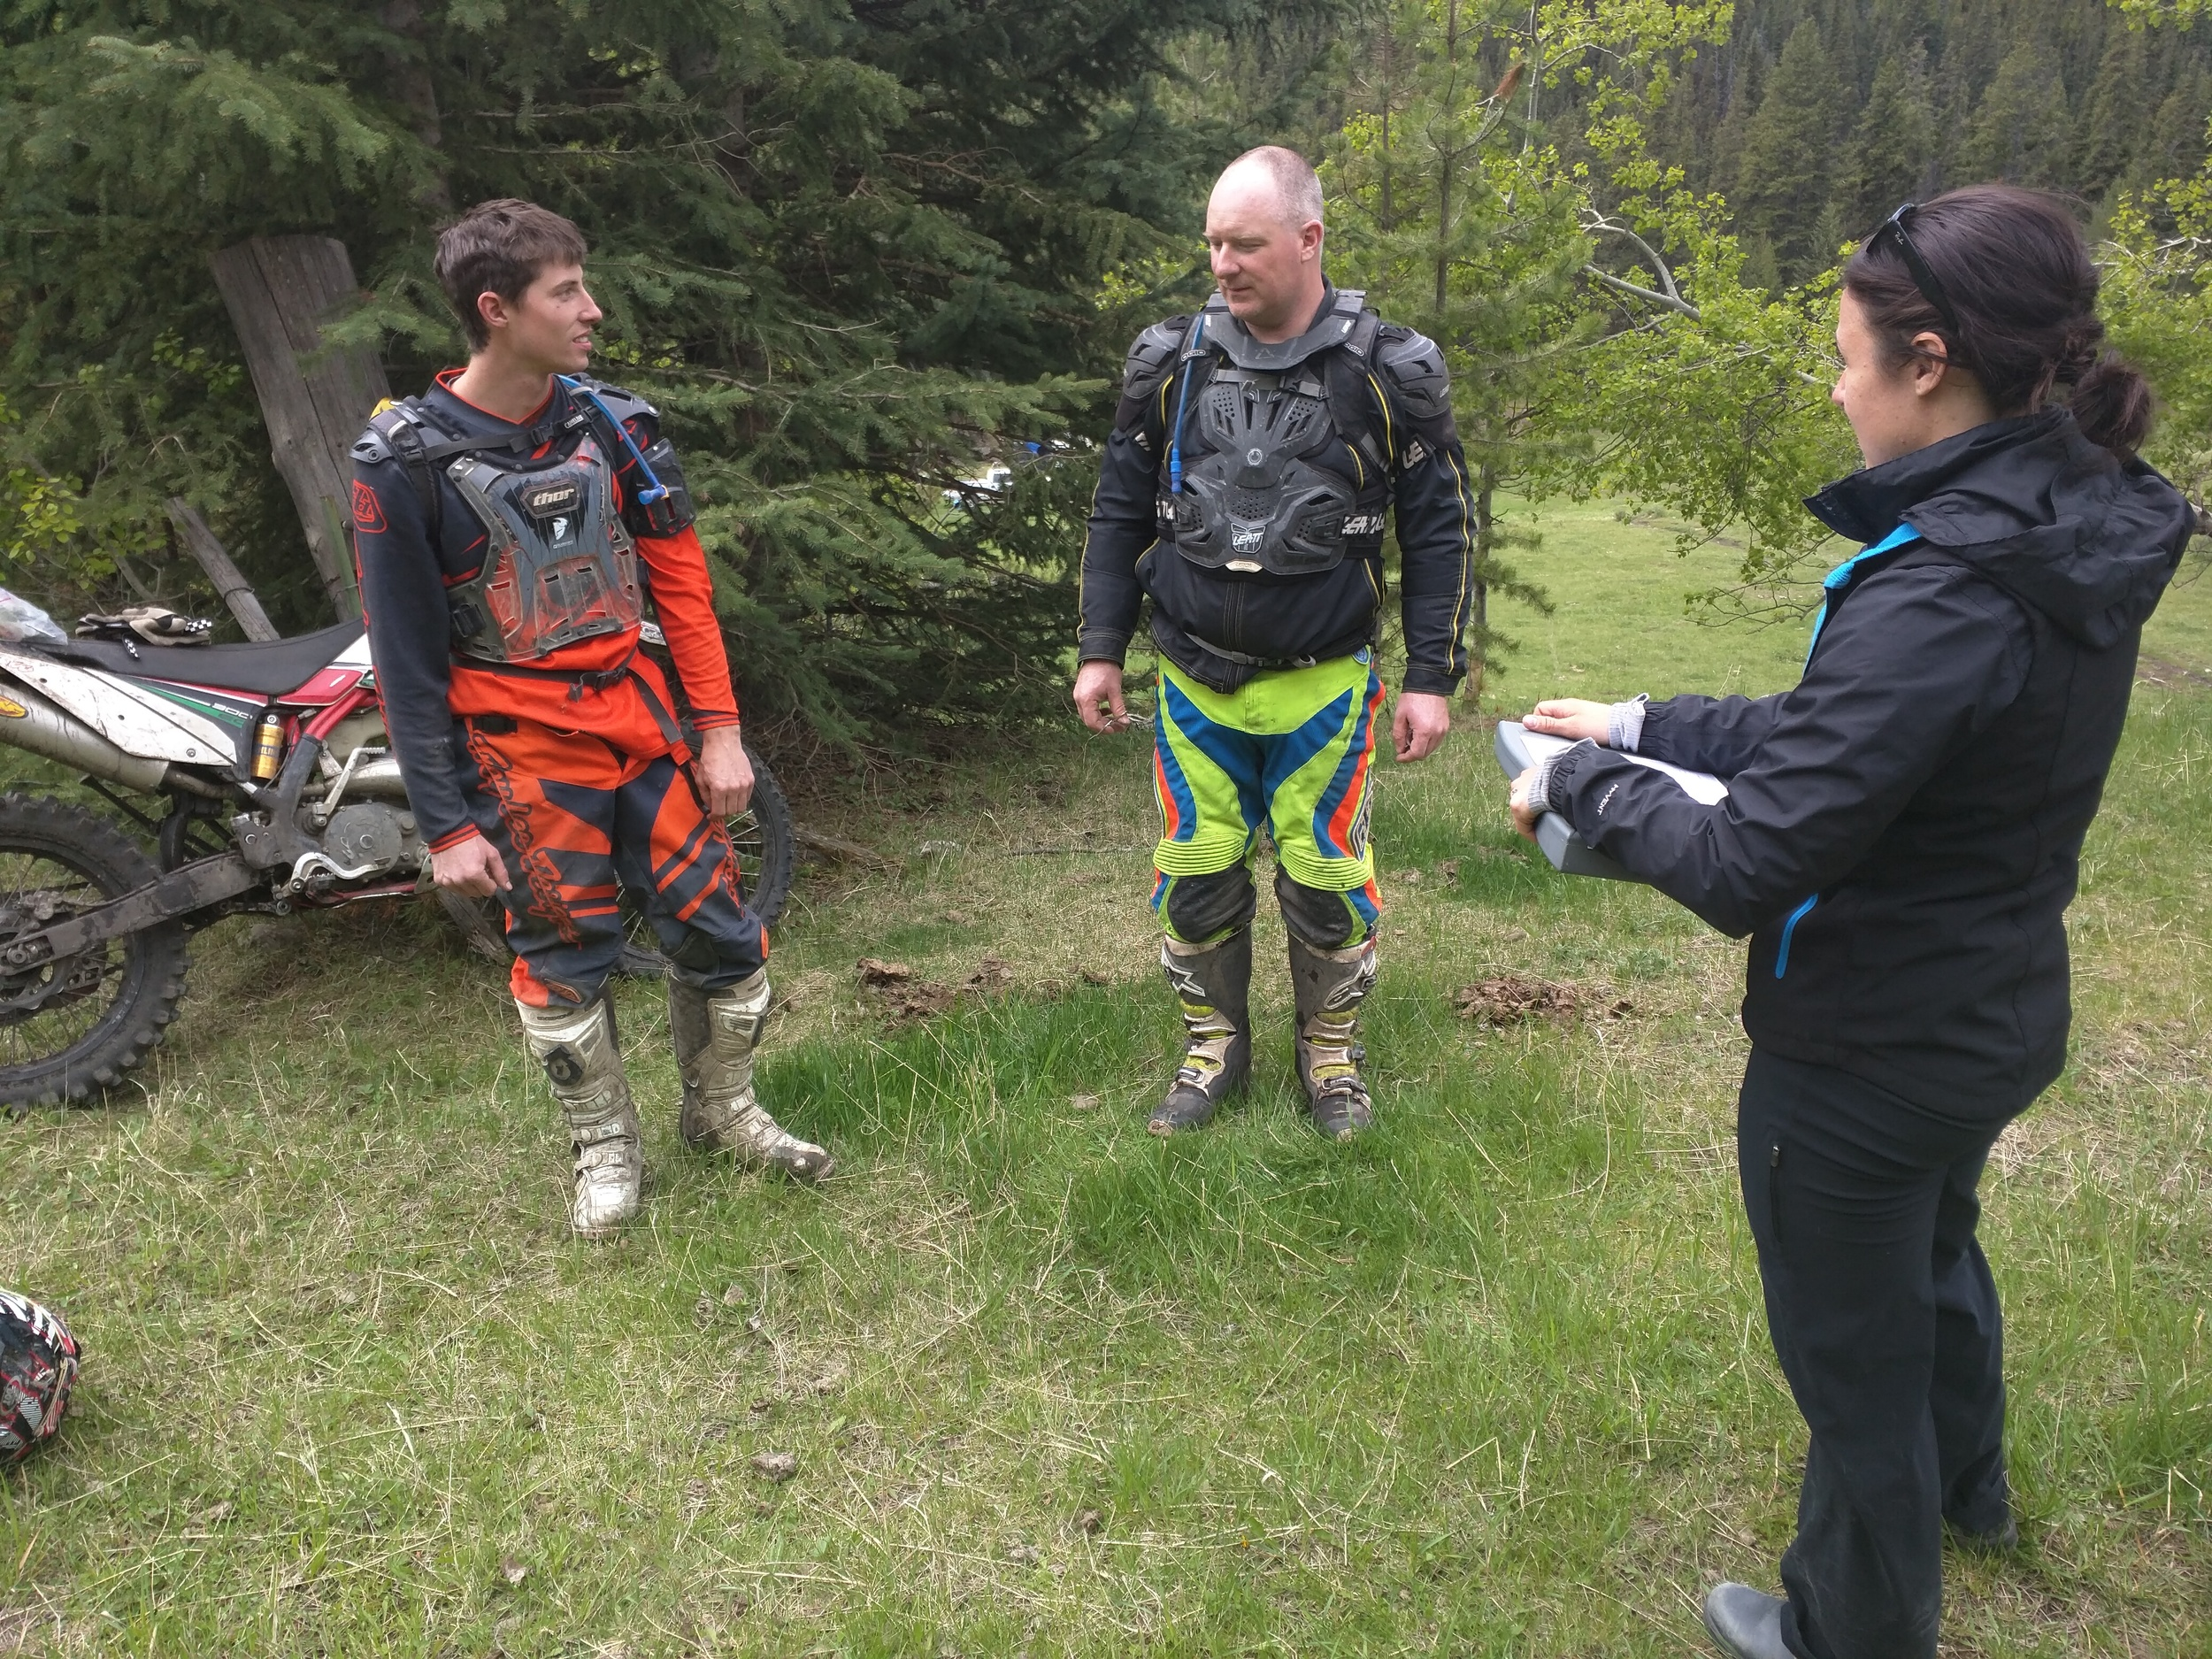 A couple of OHV enthusiasts take time to fill out a survey with Nicola.